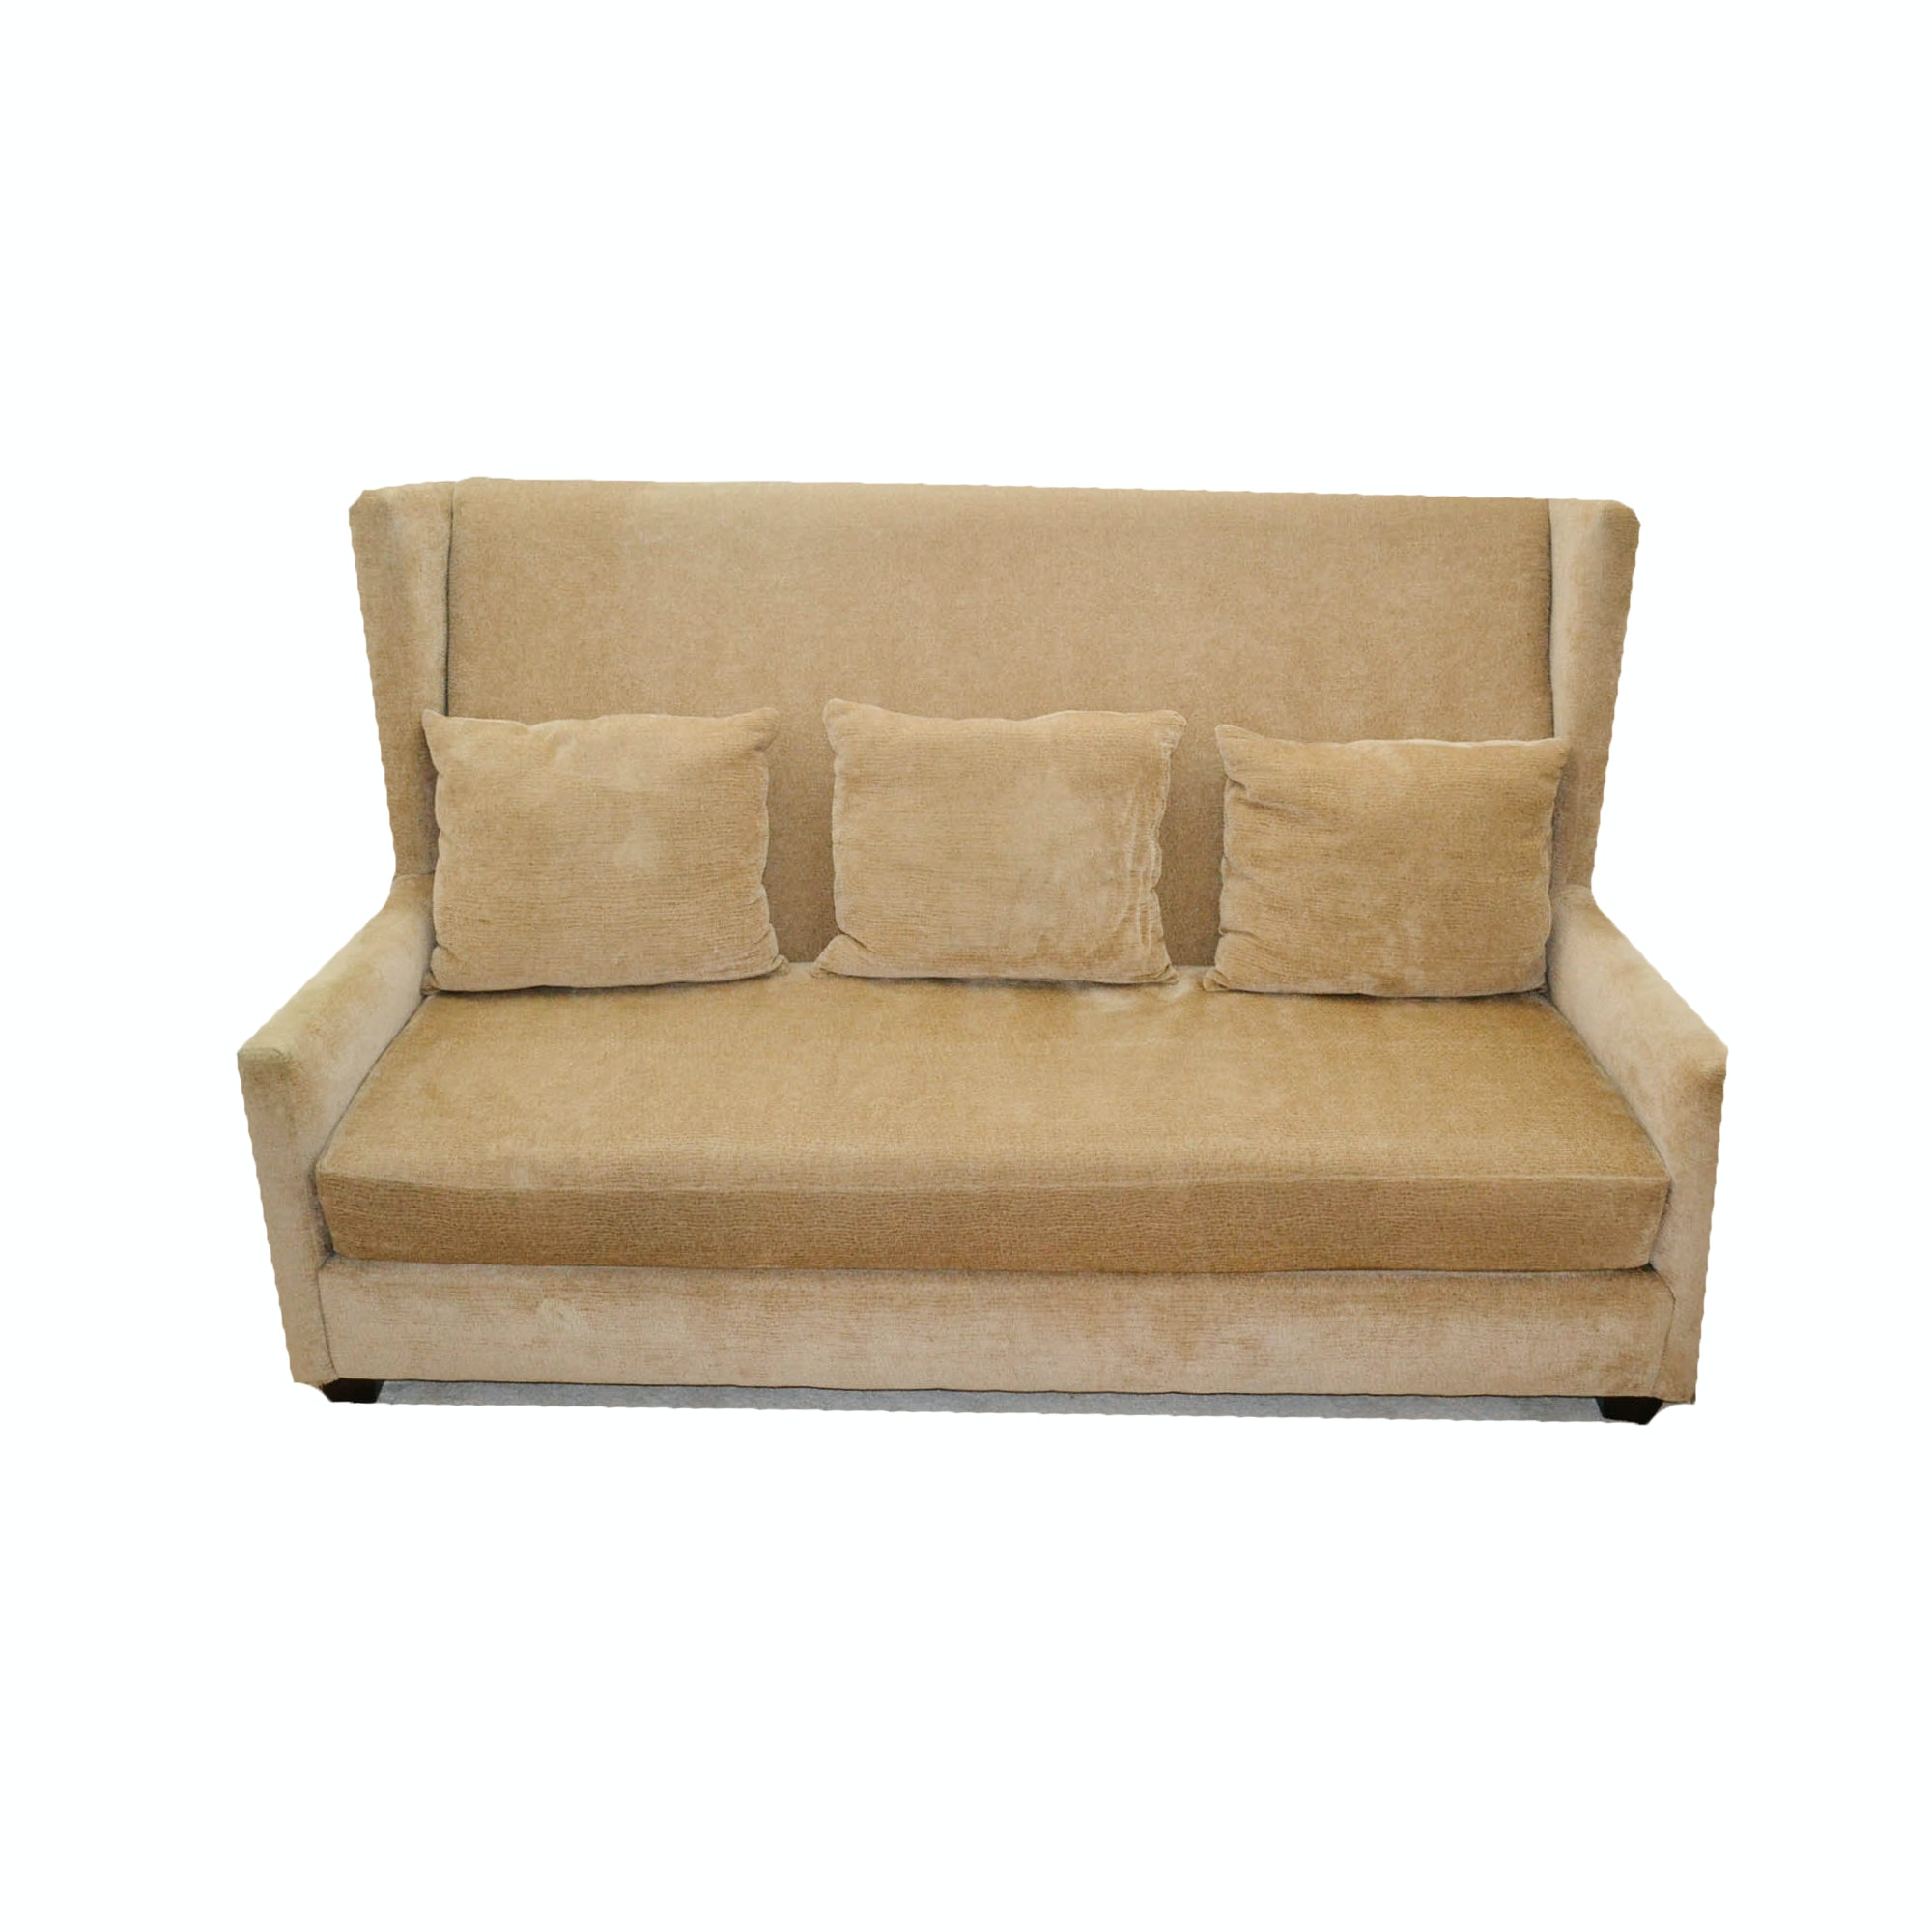 Lovely High Back Alcove Sofa By Hillcraft Furniture Company ...